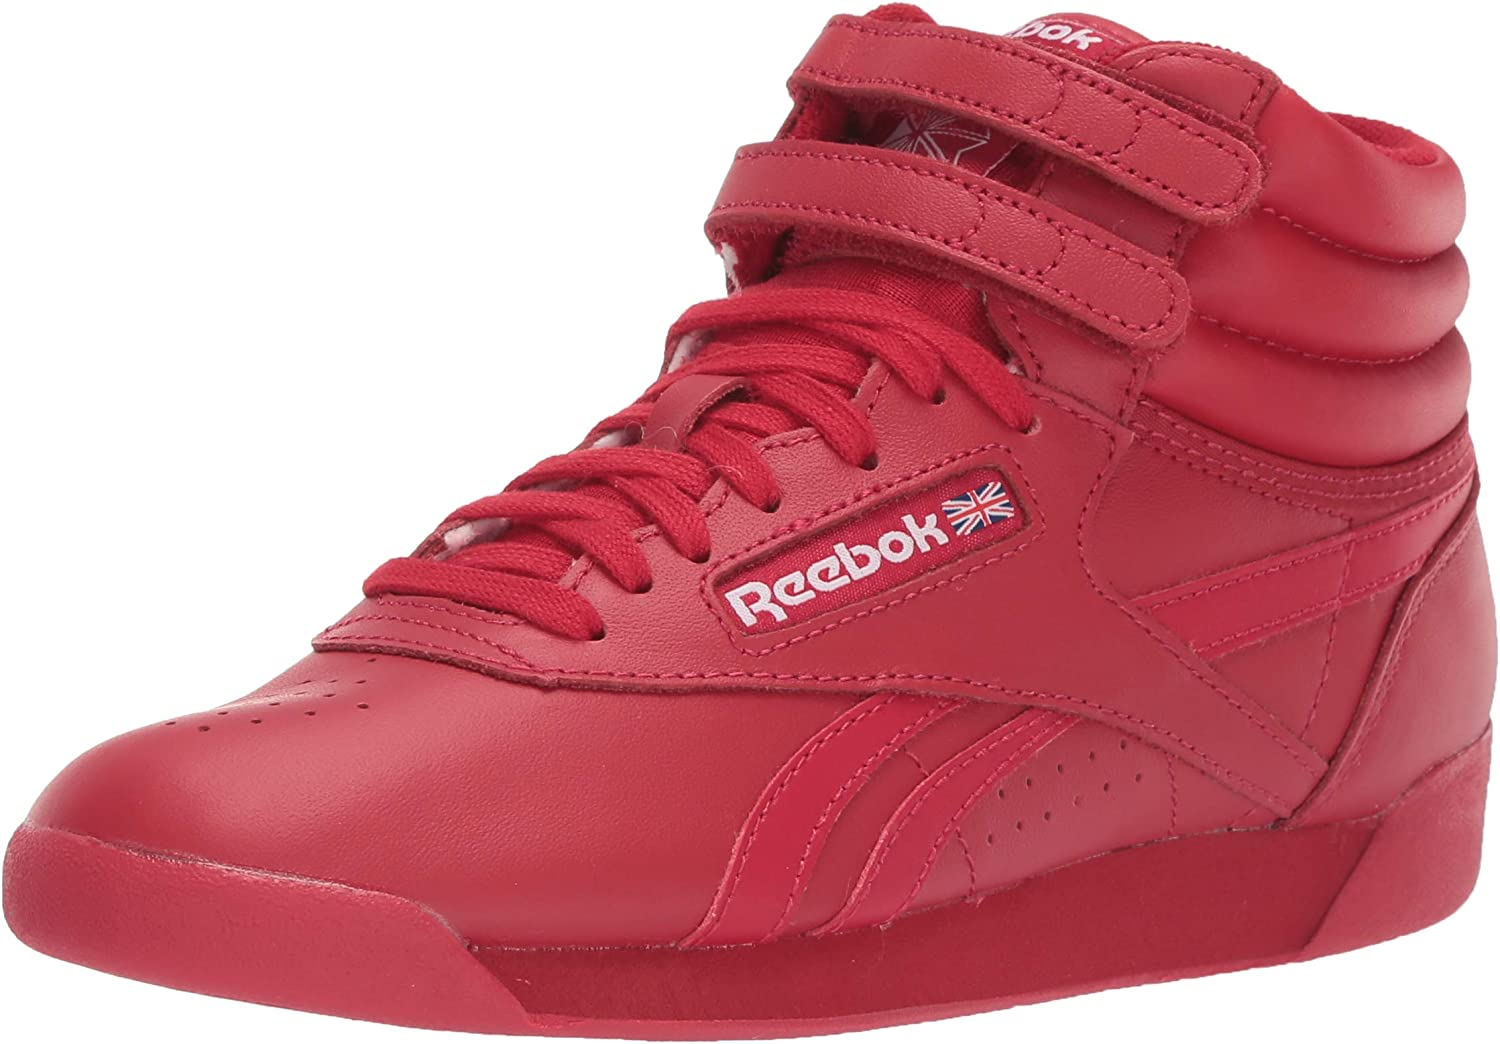 Horizontal Comienzo Melbourne  red reebok high tops Online Shopping for Women, Men, Kids Fashion &  Lifestyle|Free Delivery & Returns! -